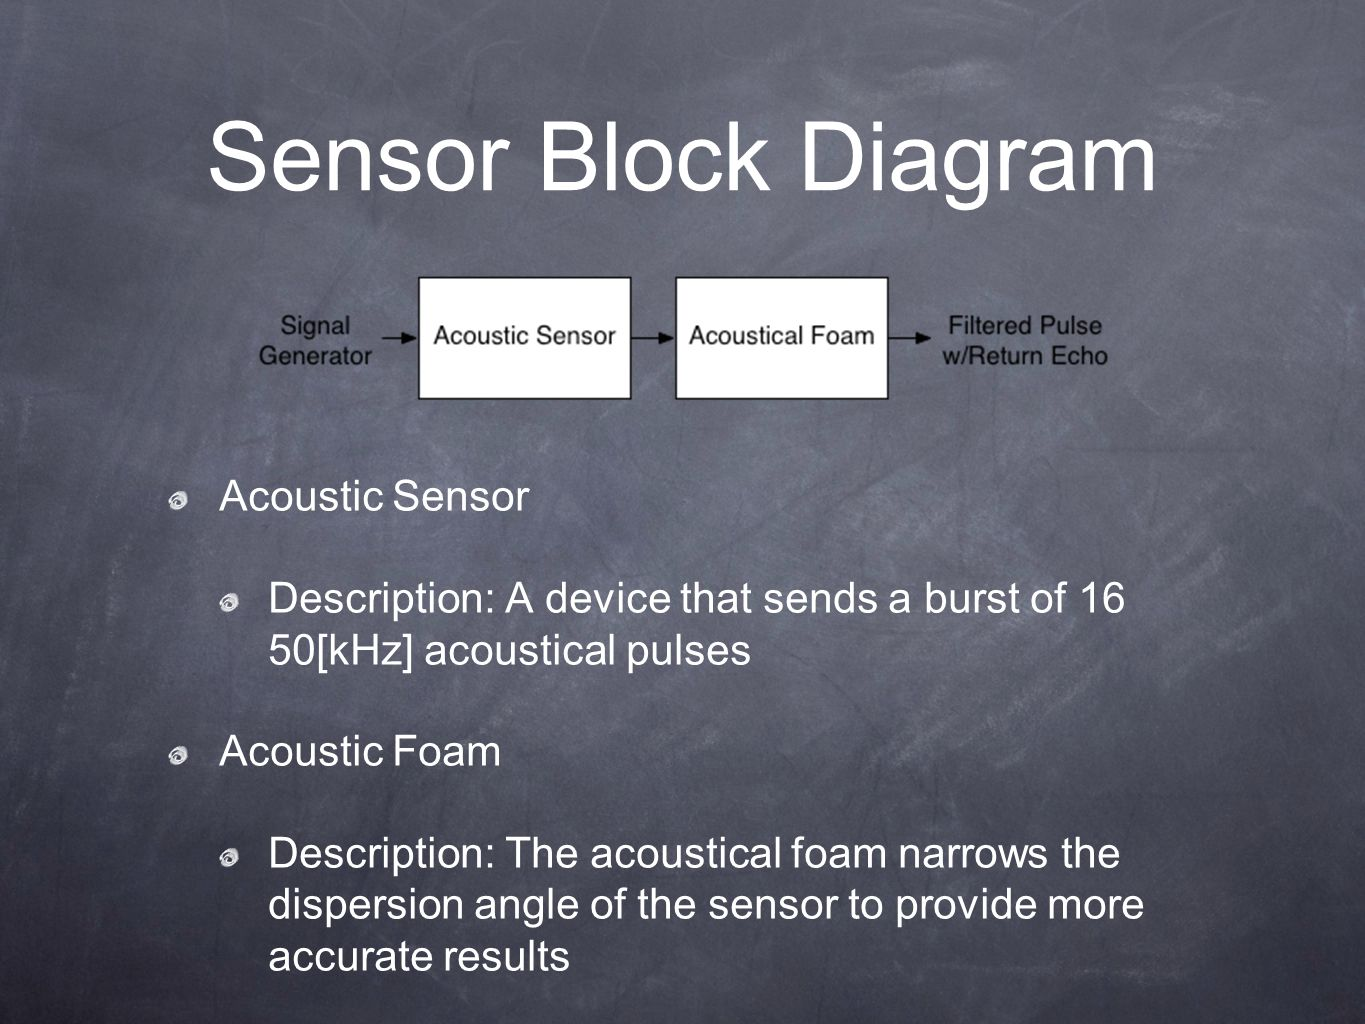 Sensor Block Diagram Acoustic Sensor Description: A device that sends a burst of 16 50[kHz] acoustical pulses Acoustic Foam Description: The acoustical foam narrows the dispersion angle of the sensor to provide more accurate results